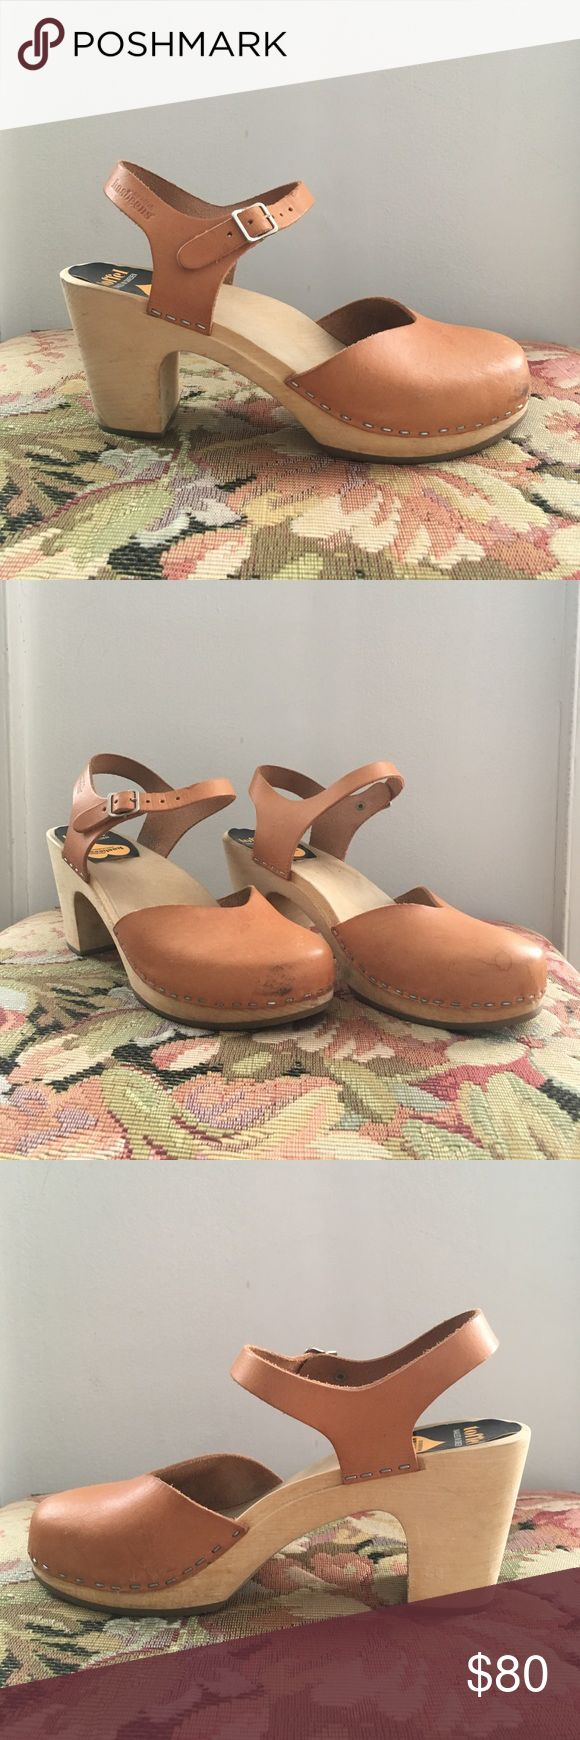 """Swedish Hasbeens Tan Closed Toe Heels Clog Sandals Swedish Hasbeens tan closed toe wood and leather clog heels with rubber soles. Heel height is 3.3"""". Size 41. These are used, see photos for scuff marks and water damage. Swedish Hasbeens Shoes Mules & Clogs"""